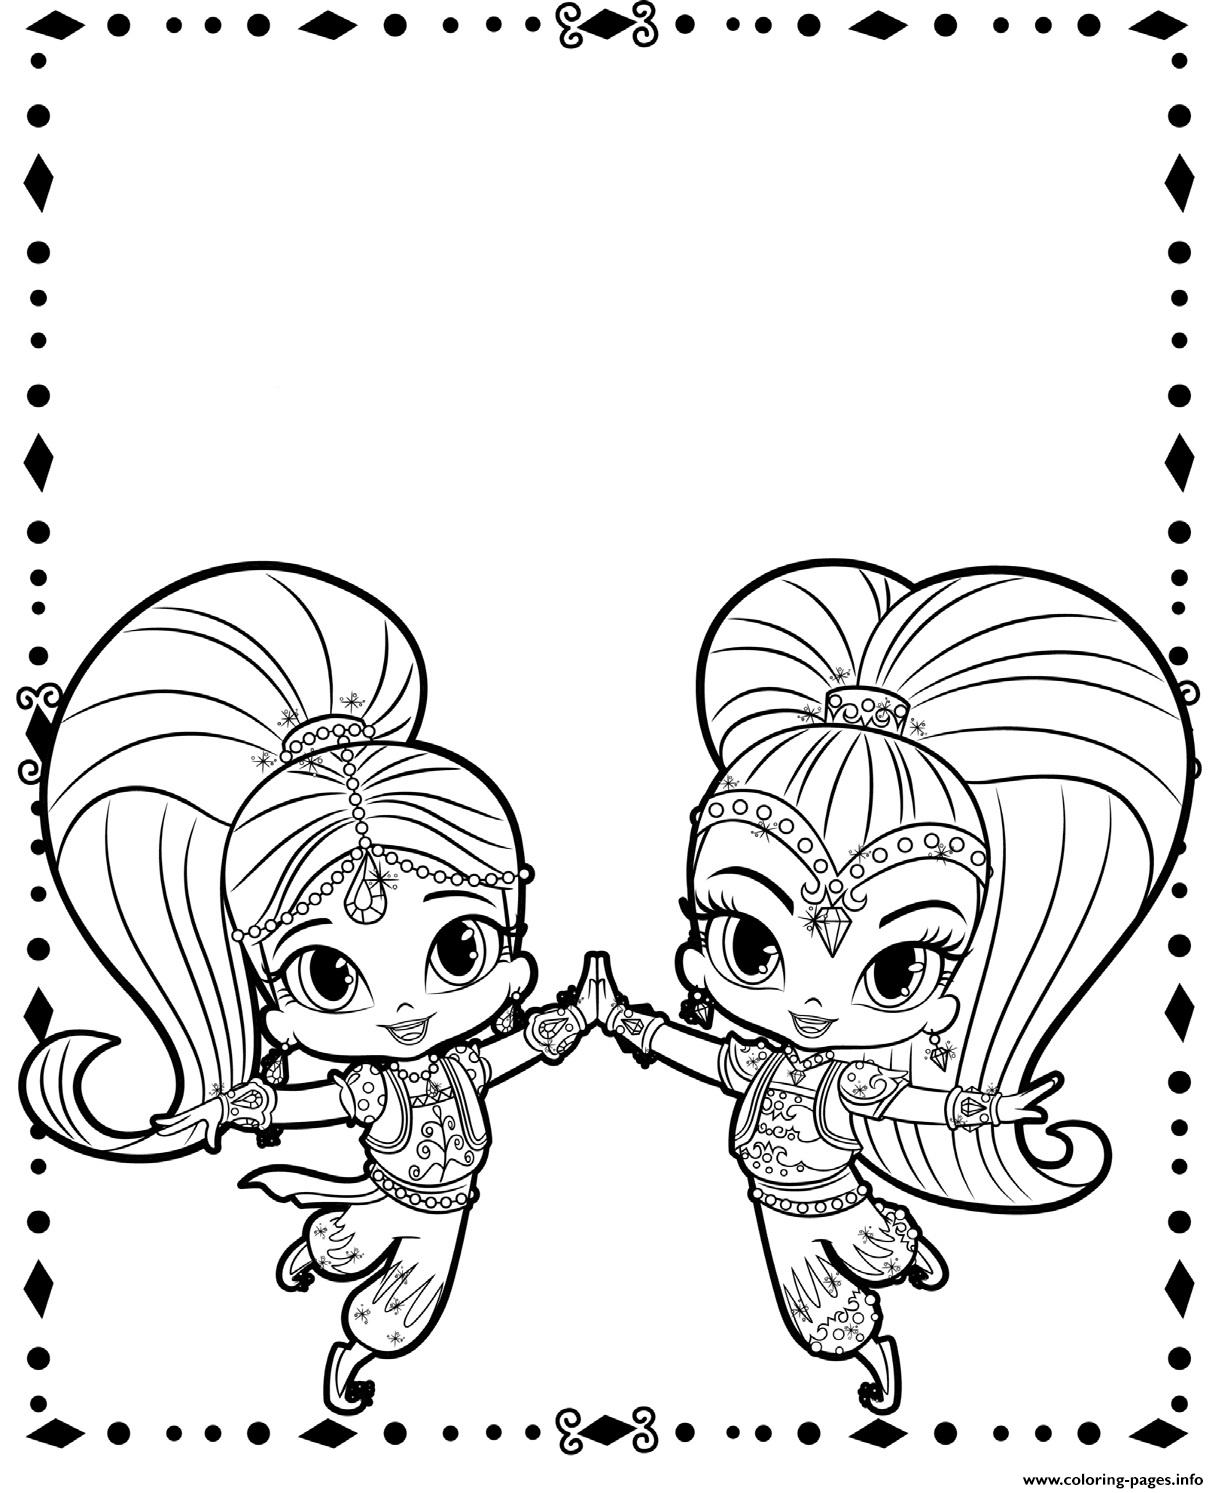 Printable coloring pages shimmer and shine - Printable Coloring Pages Shimmer And Shine 17